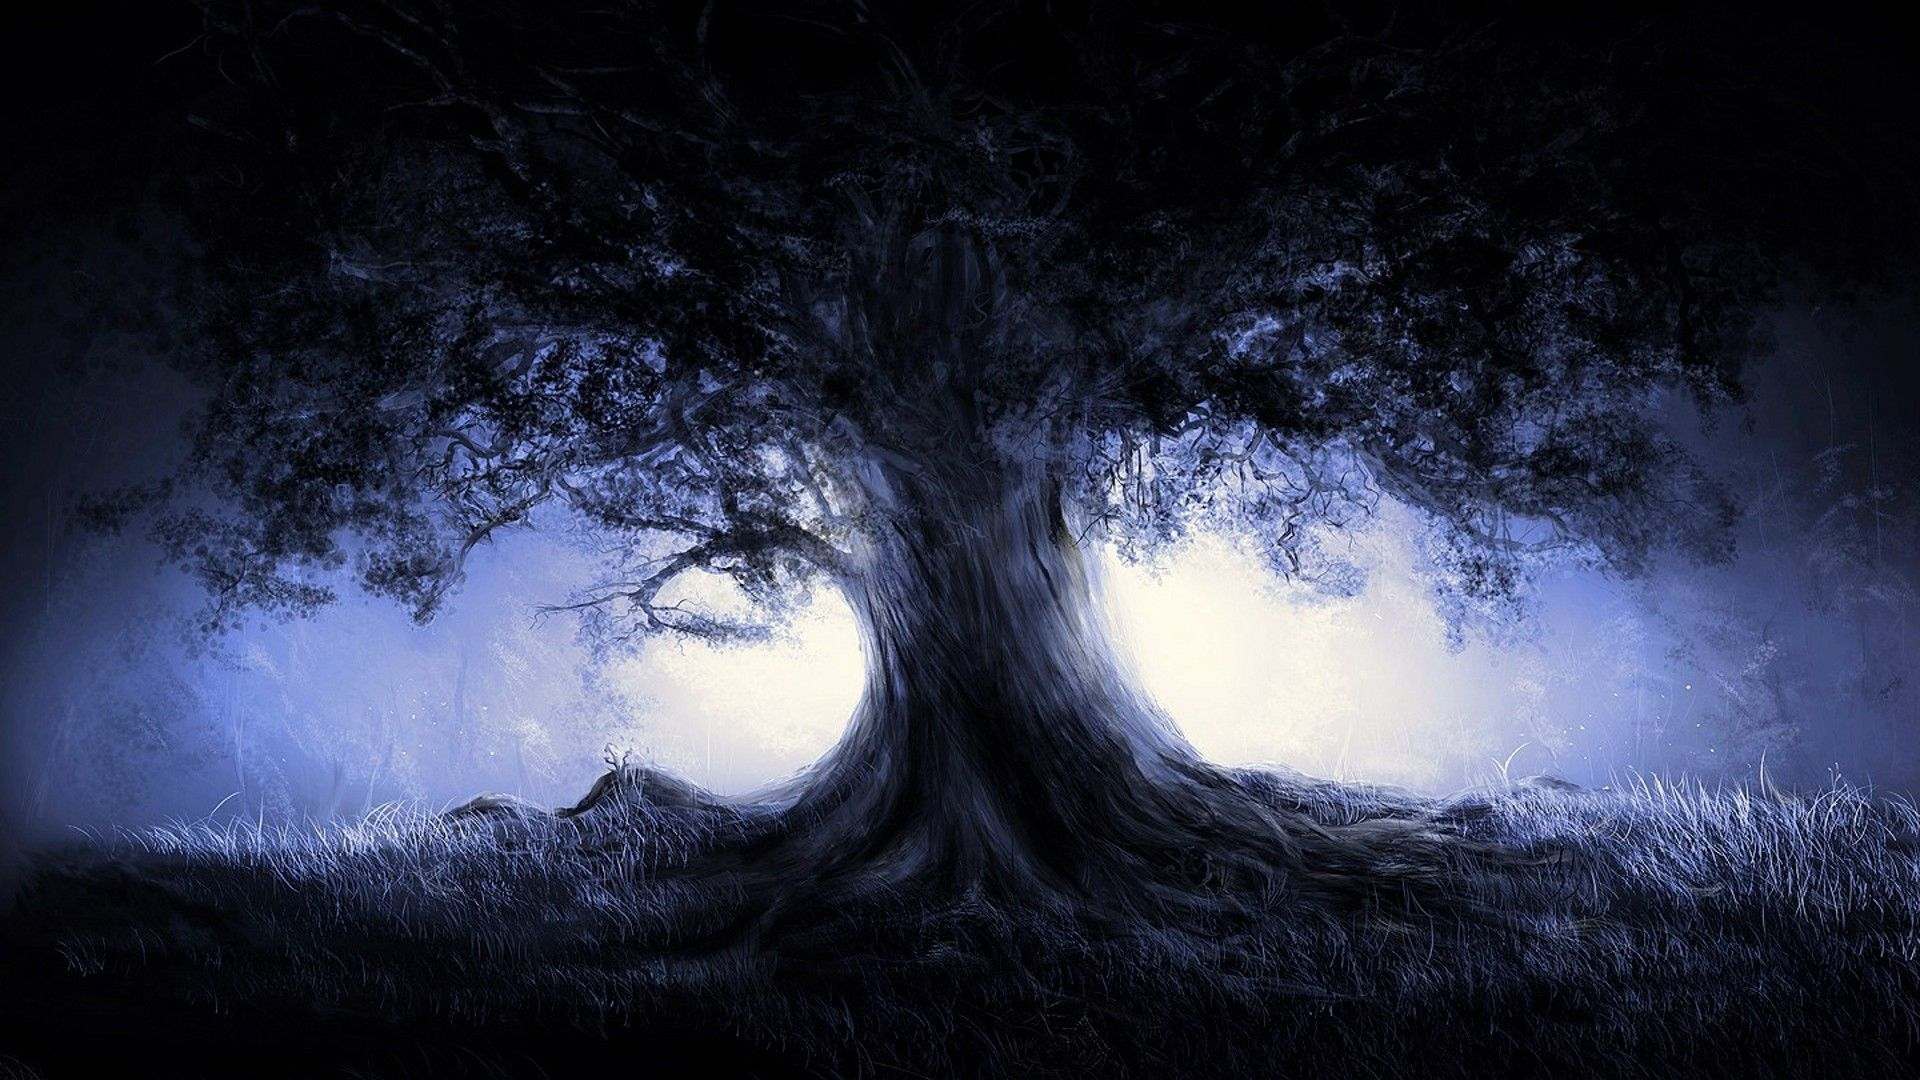 Dark Trees Hd Wallpapers: Dark Forest Wallpaper 1080p